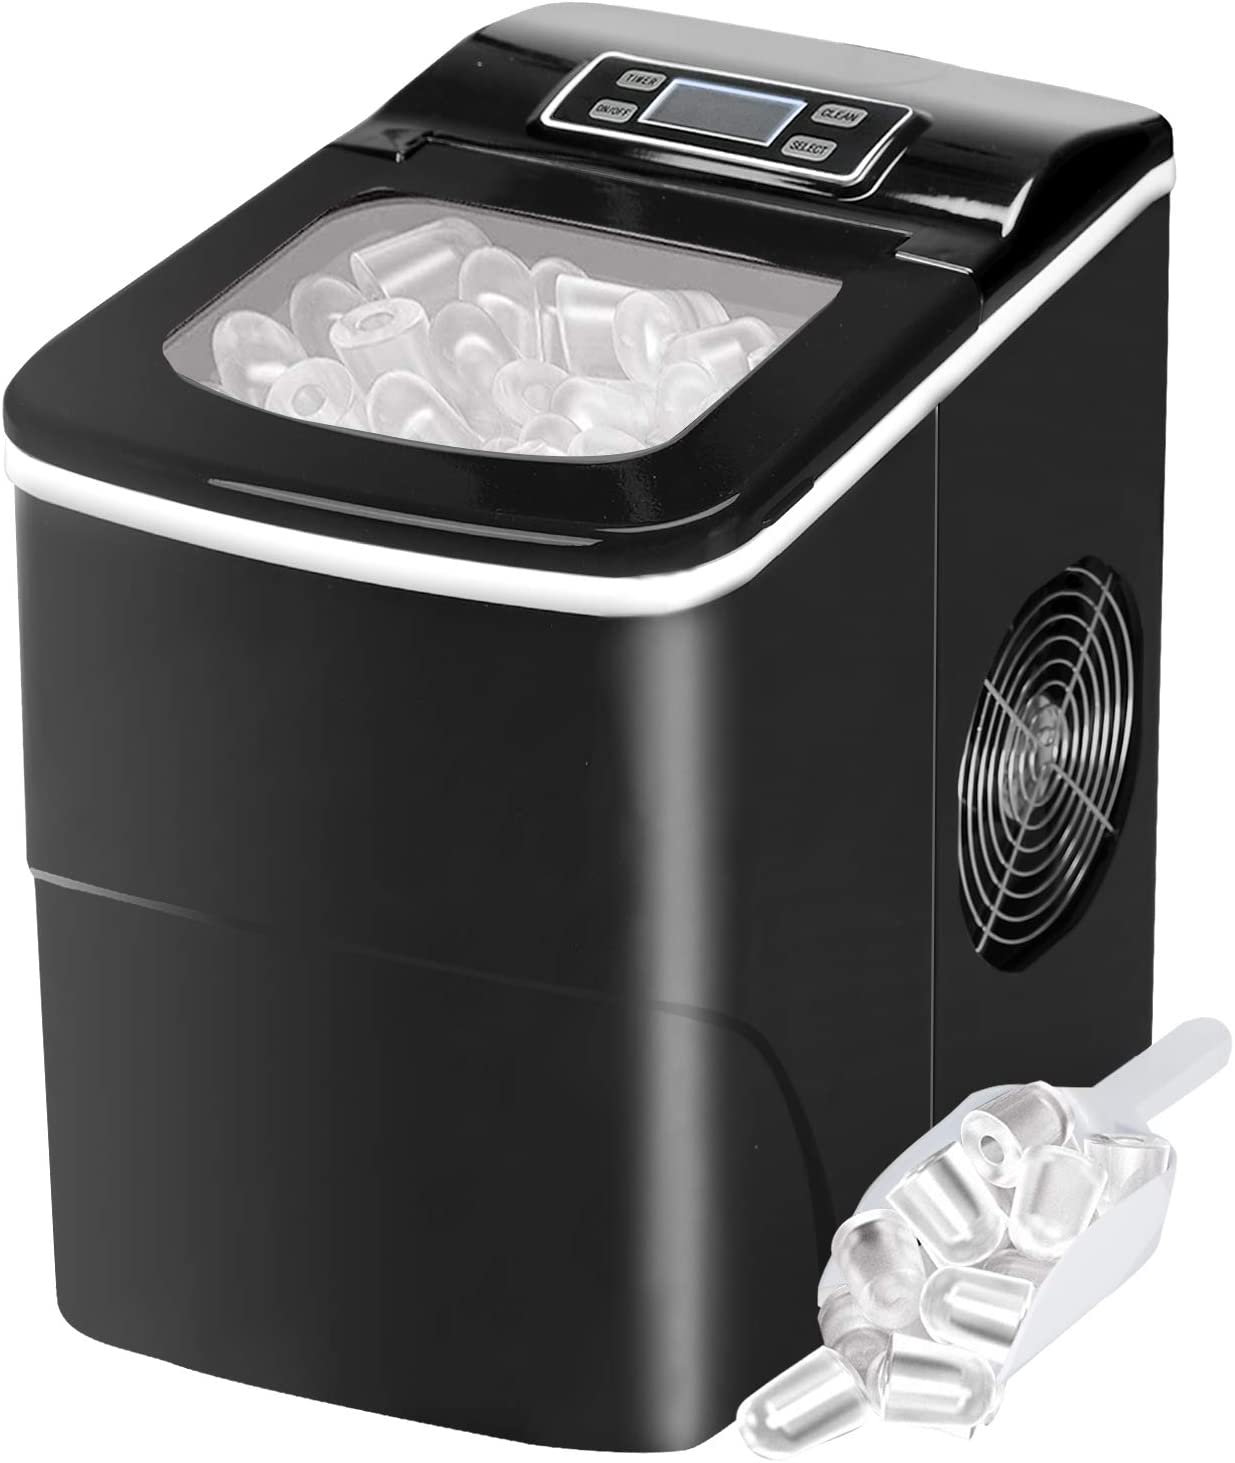 Countertop Ice Maker Portable Ice Making Machine with Timer -Bullet Ice Cubes Ready in 6 Mins - Makes 26 lbs Ice in 24 hrs - Perfect for Home/Office/Bar, LCD Display & Ice Scoop & Bucket(Black)